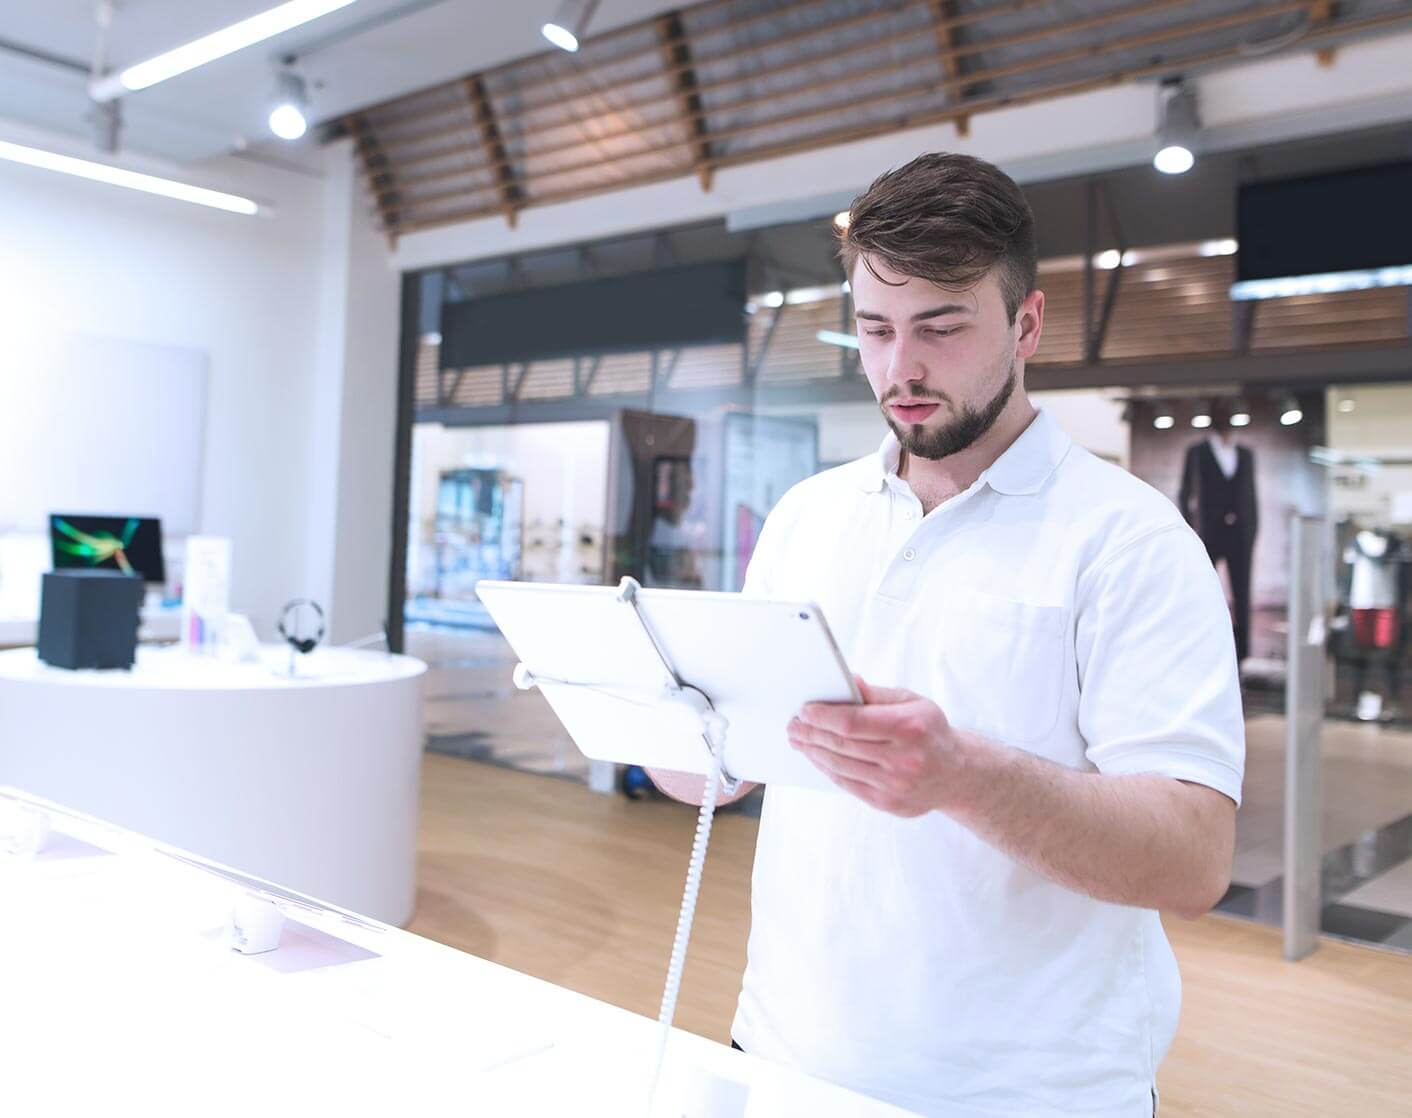 white man in white shirt looking at a display tablet in a store